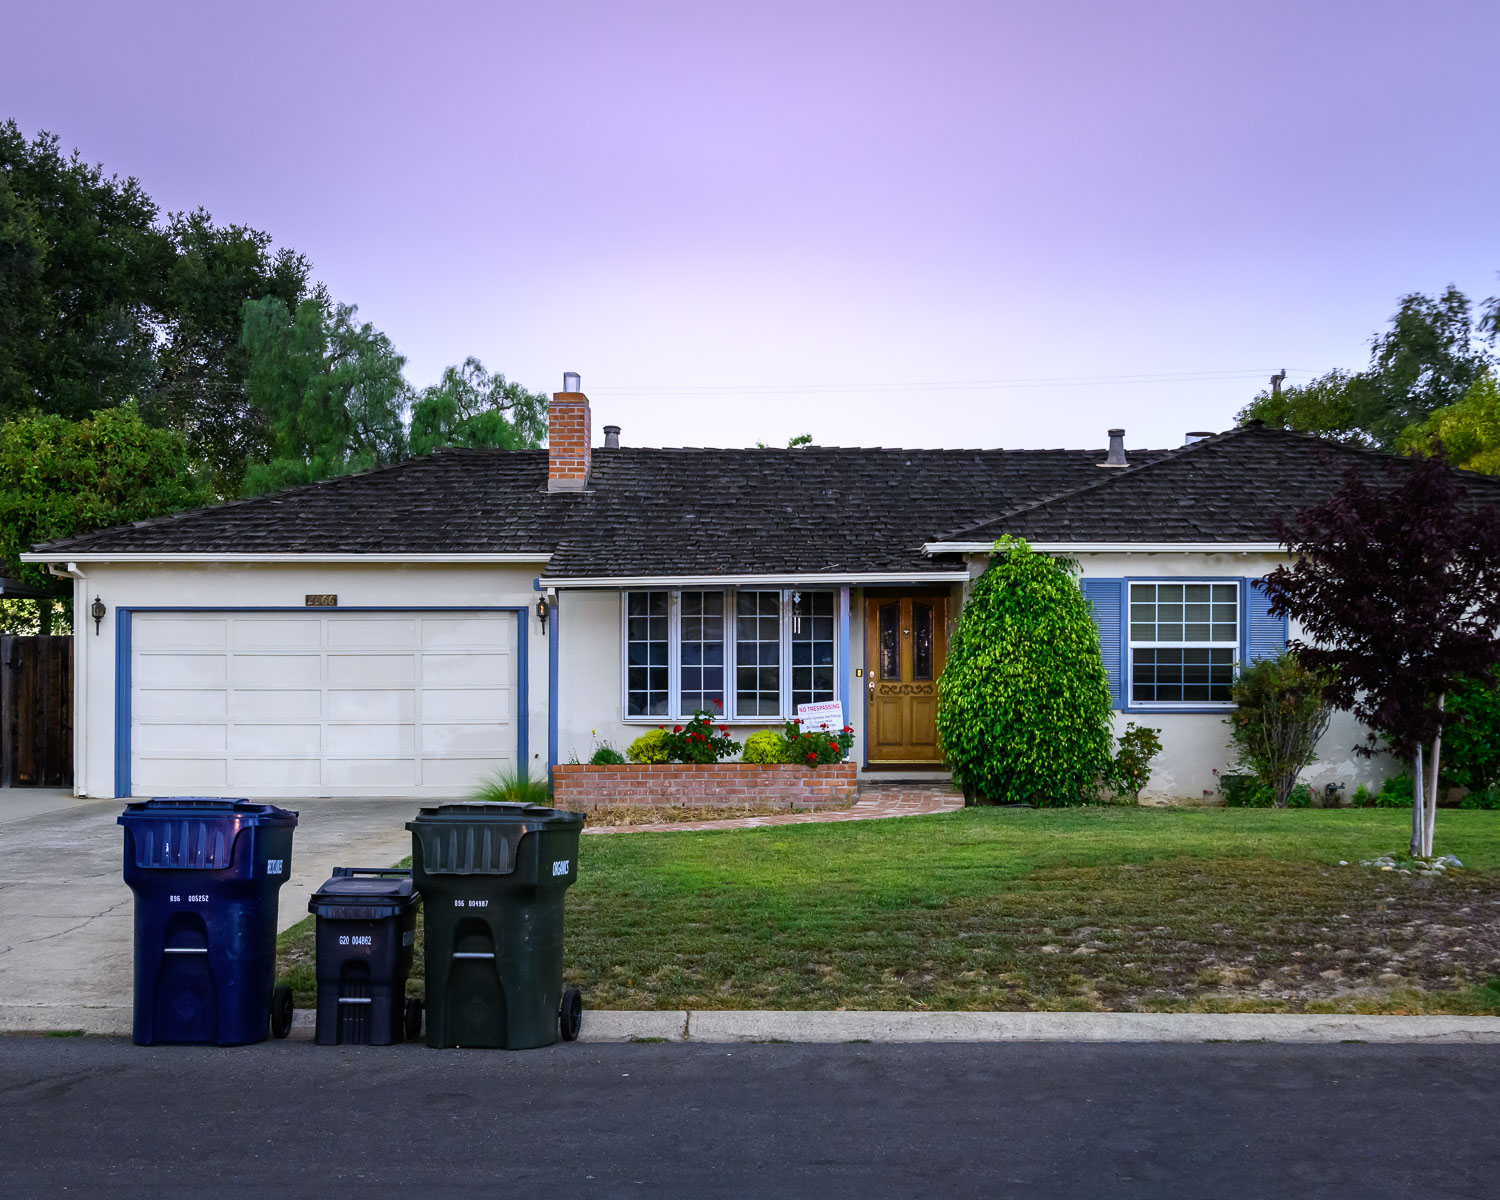 Steve Jobs' childhood home at 2066 Crist Drive in Los Altos. In 1976, together with Steve Wozniak, he built the first 50 Apple 1 computers in the garage which the pair sold to computer store in Mountain View for $500 each.